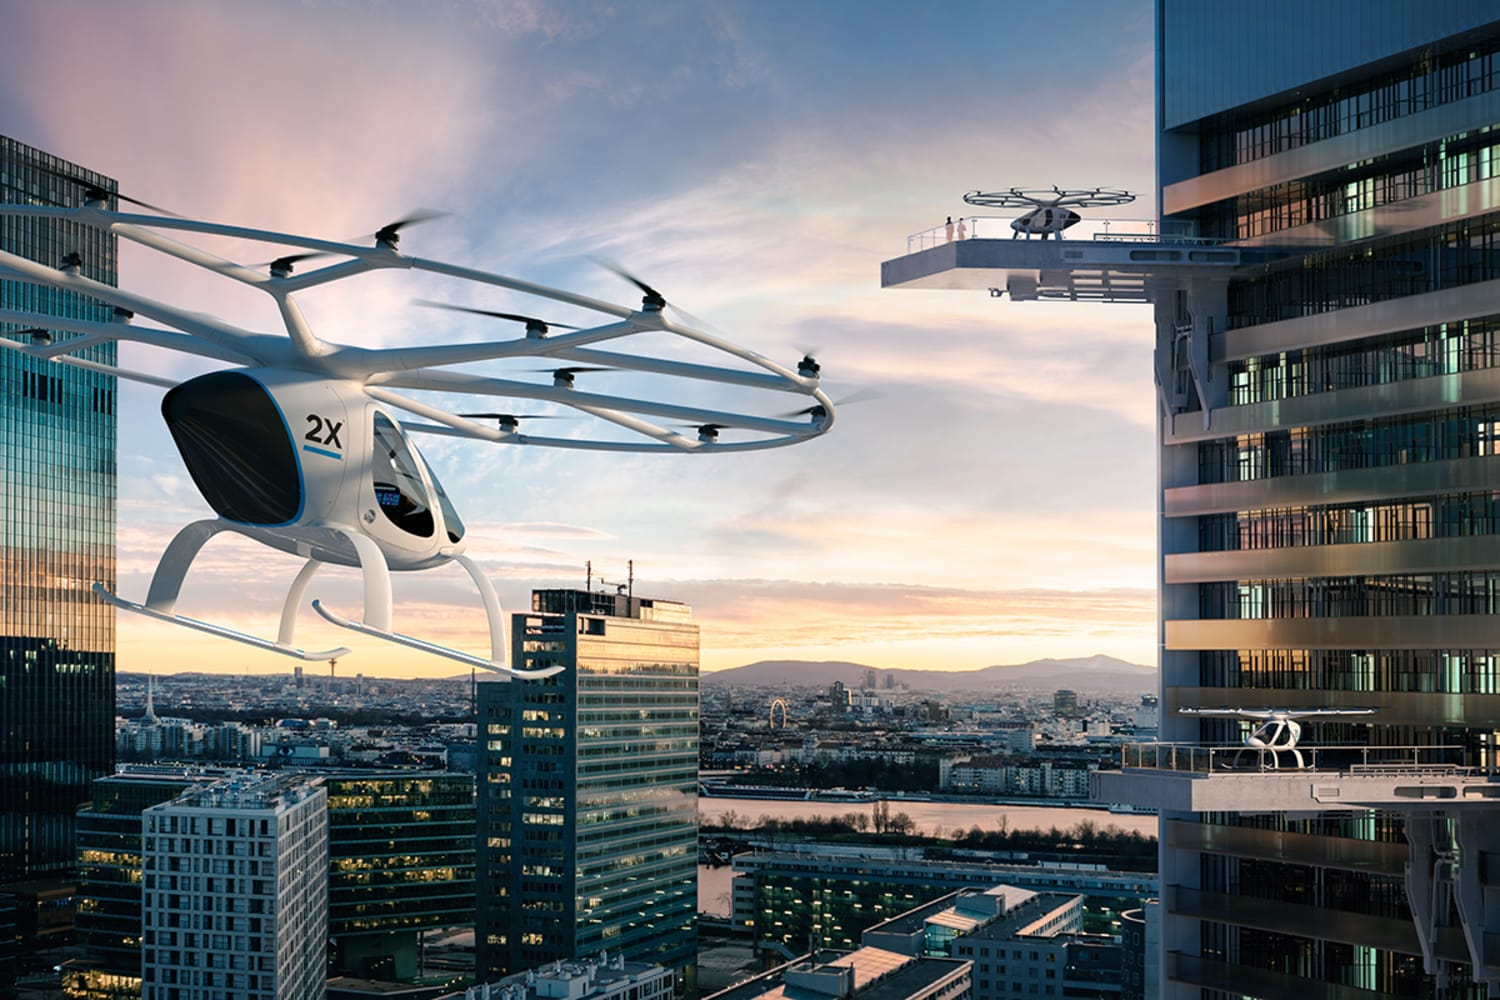 WEB volocopter 2x innercity